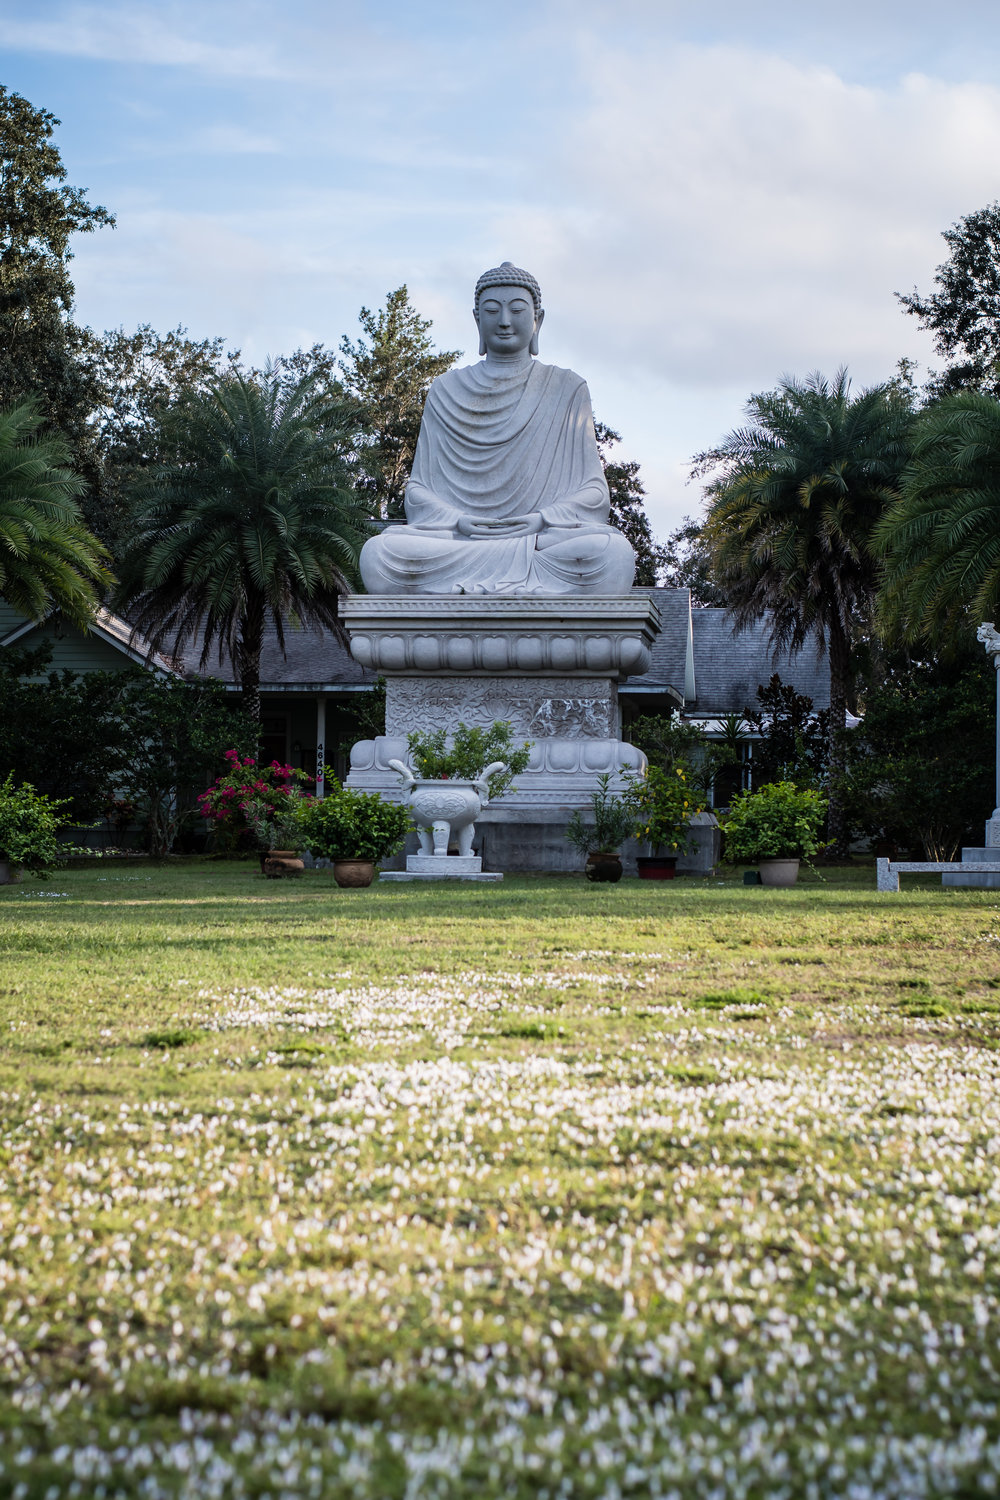 white-sands-buddhist-center-orlando-travel-photographer-yanitza-ninett-1.jpg